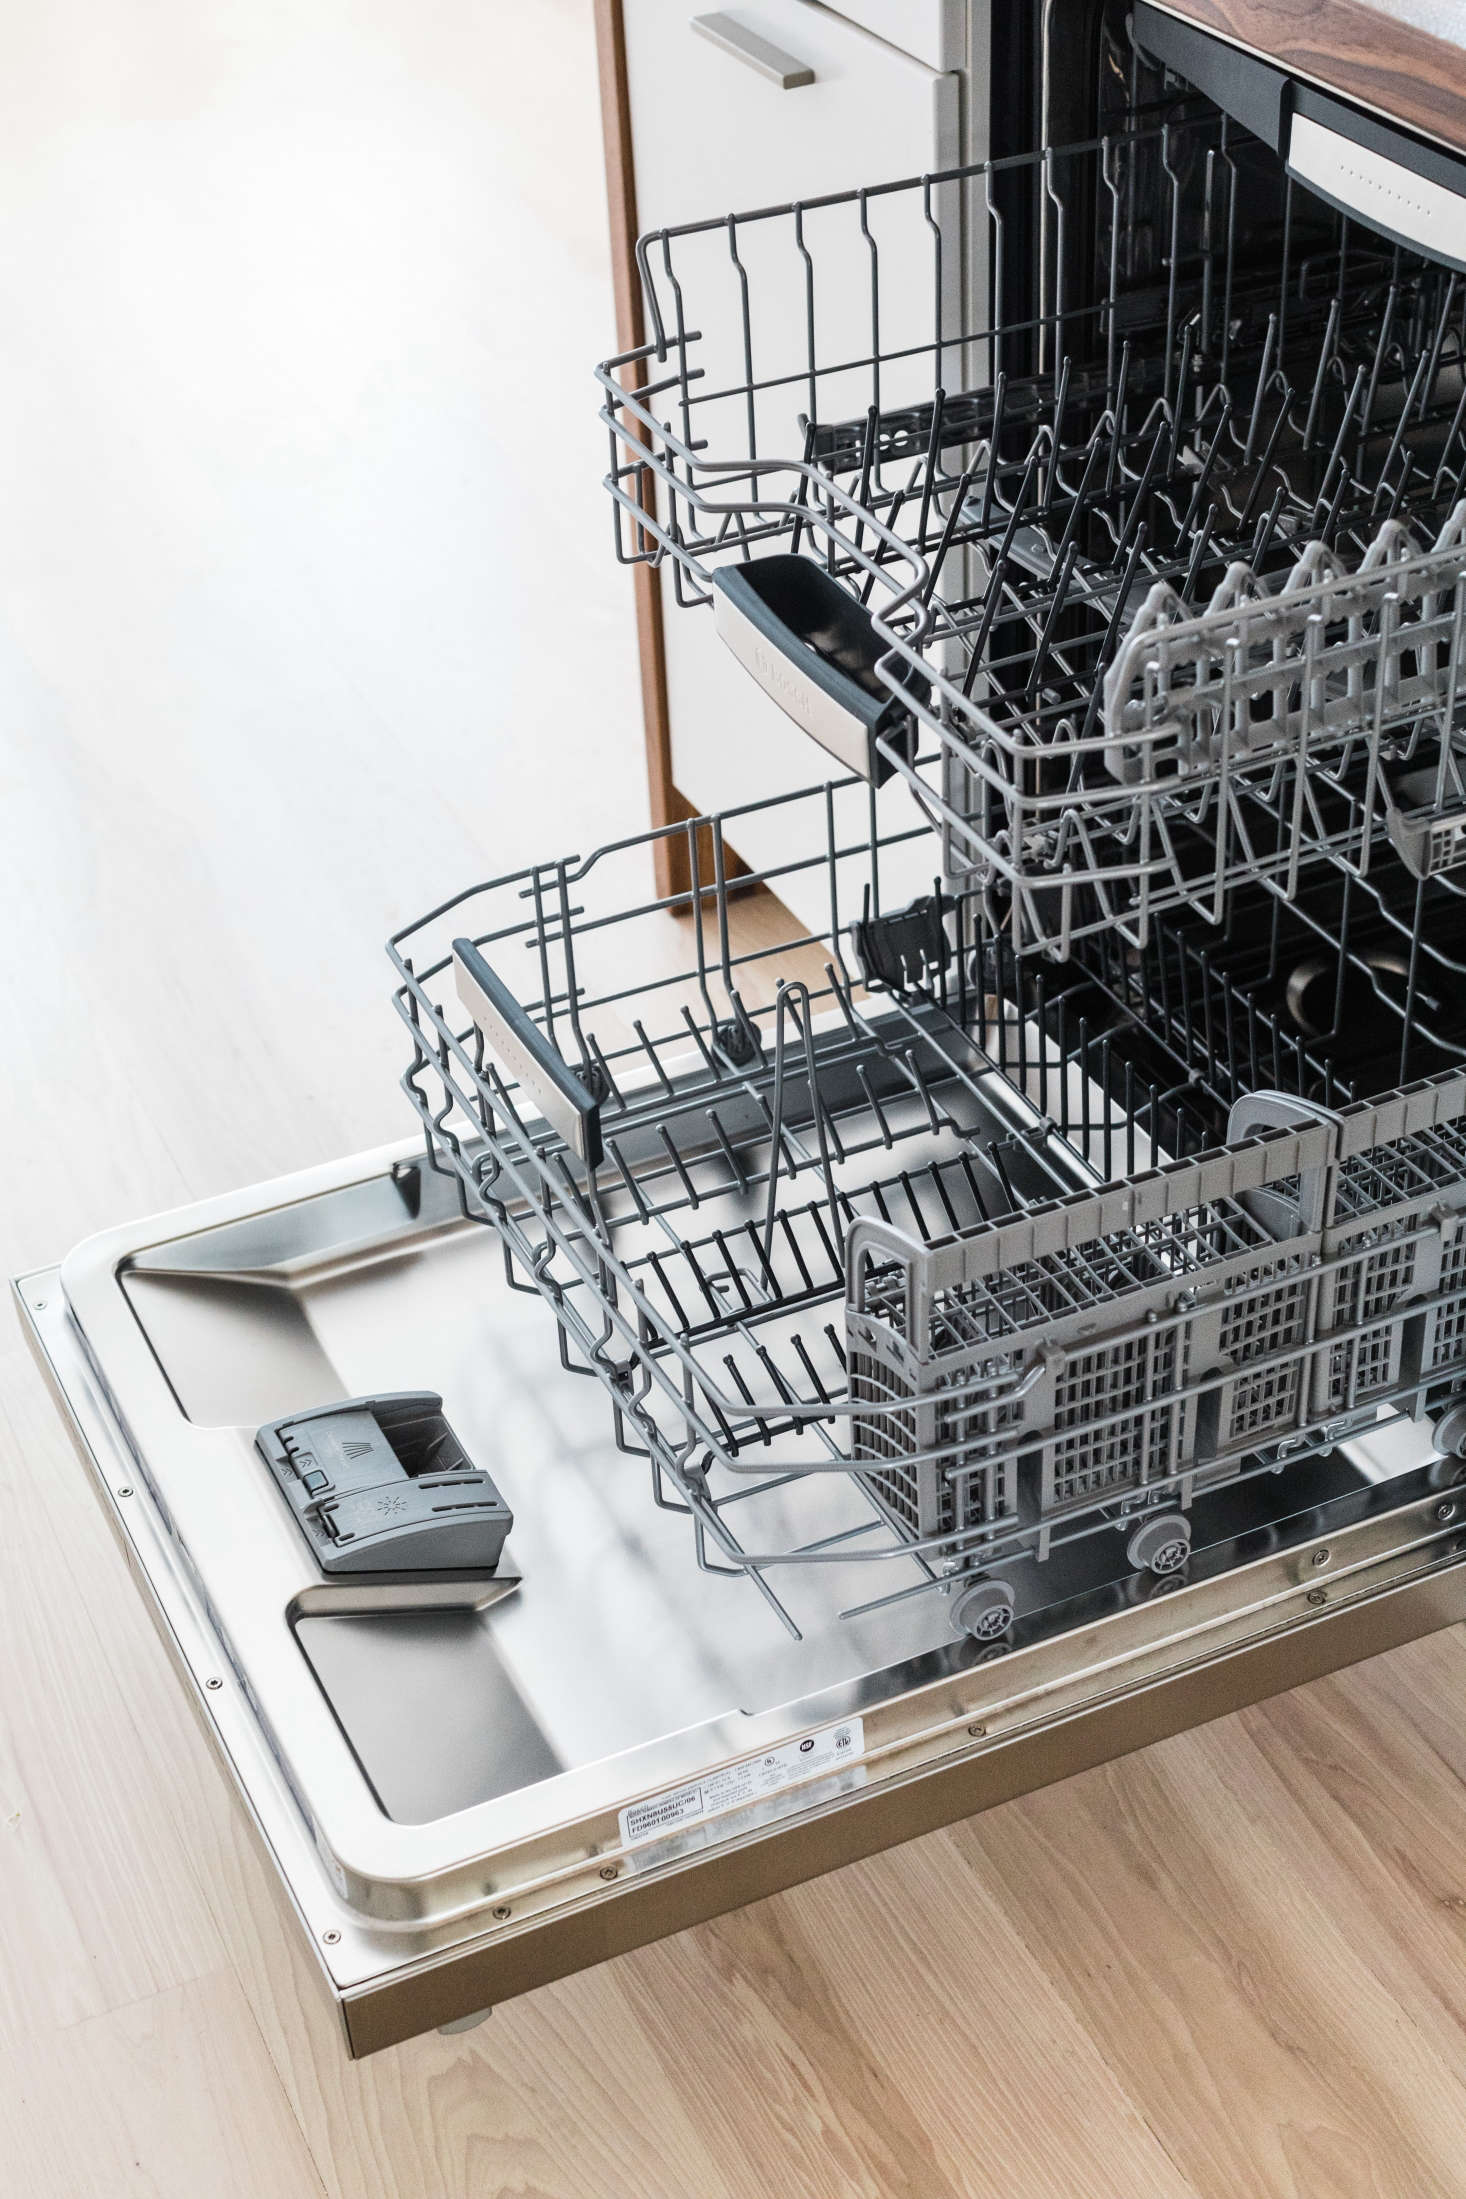 expert advice from bosch how to load a dishwasher remodelista. Black Bedroom Furniture Sets. Home Design Ideas